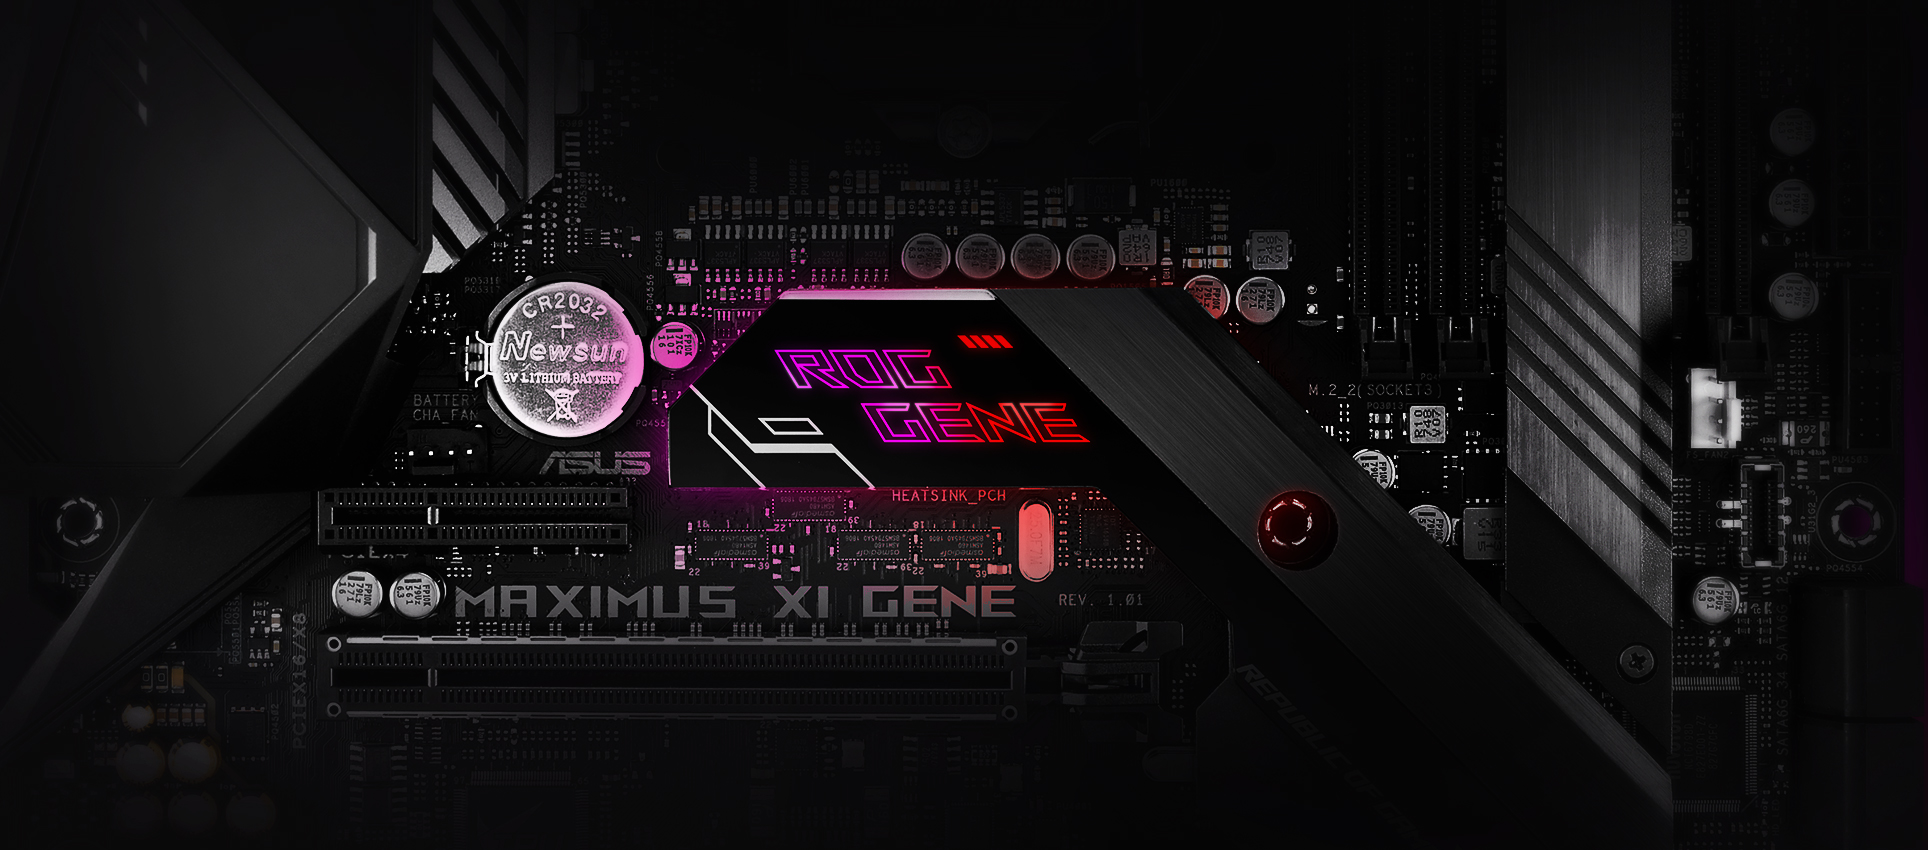 Dc Fan Controller Takes Bare Bones Approach Analog Content From Rog Maximus Xi Gene Motherboards Asus Usa Together With Aura Rgb Lighting That Synchronizes A Vast Ecosystem Of Compatible Products Is Primed For Endless Personalization